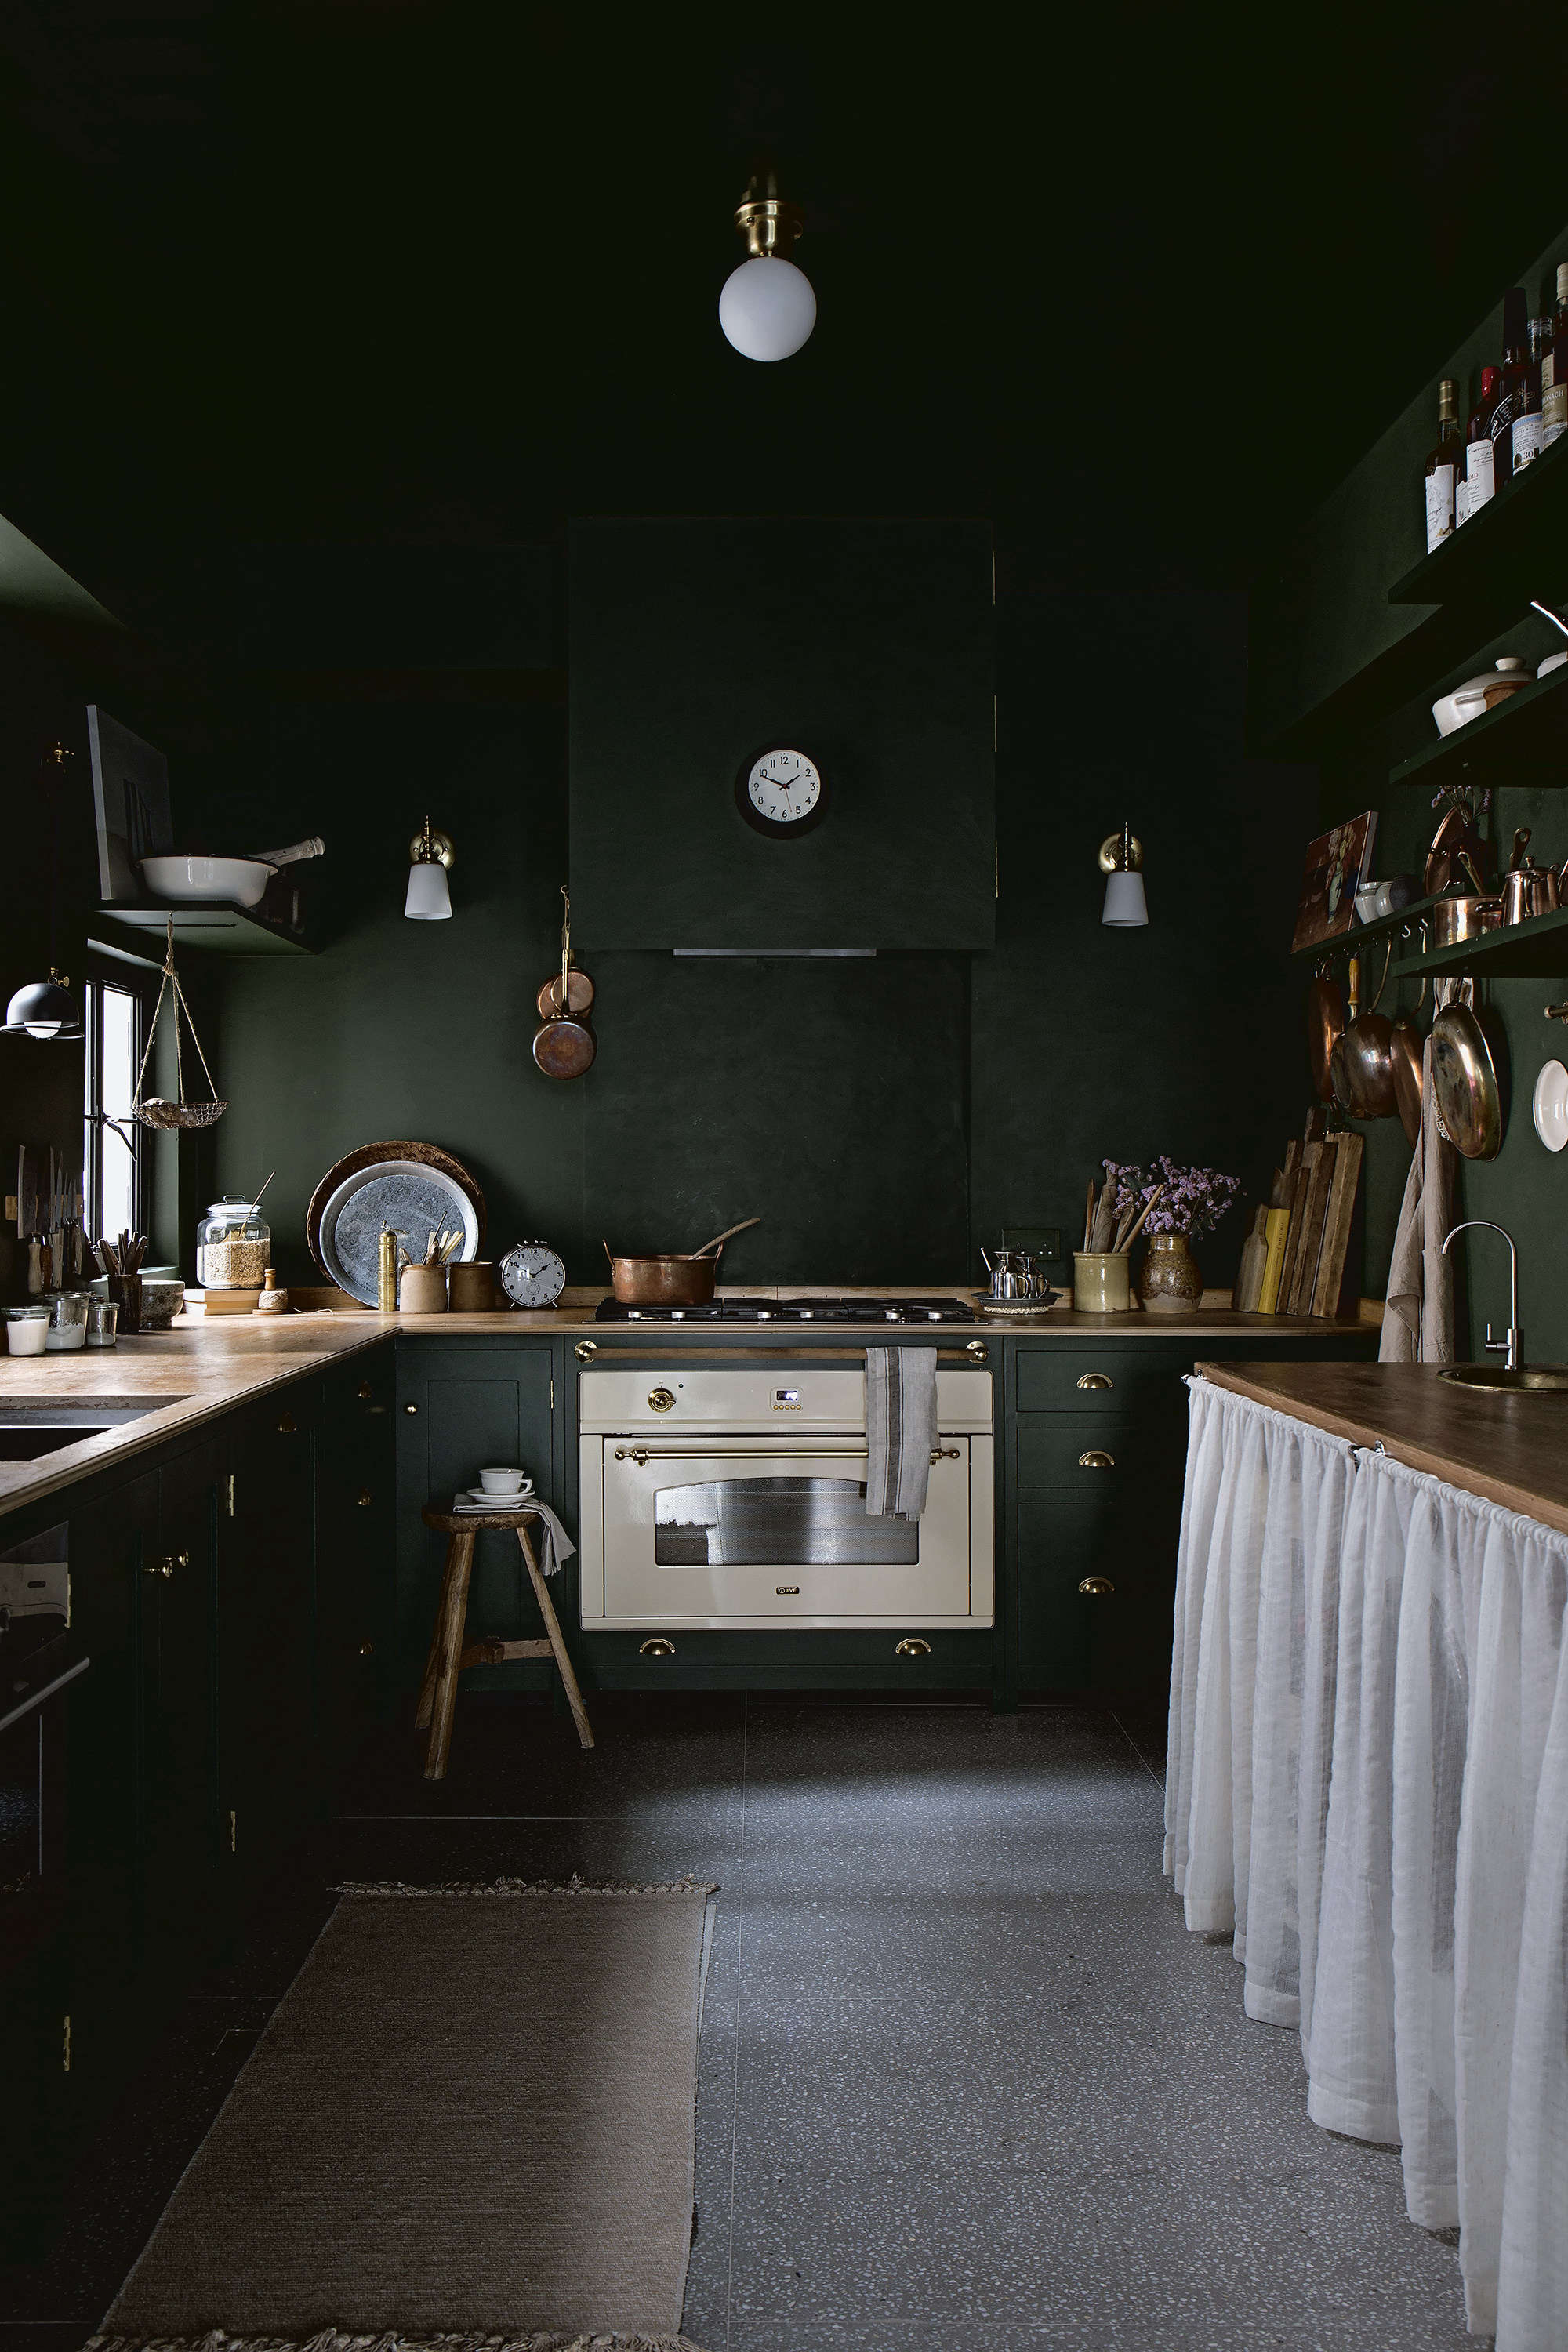 Kitchen of the Week: The 'Angry Food Blogger' at Home in Hong Kong - Remodelista